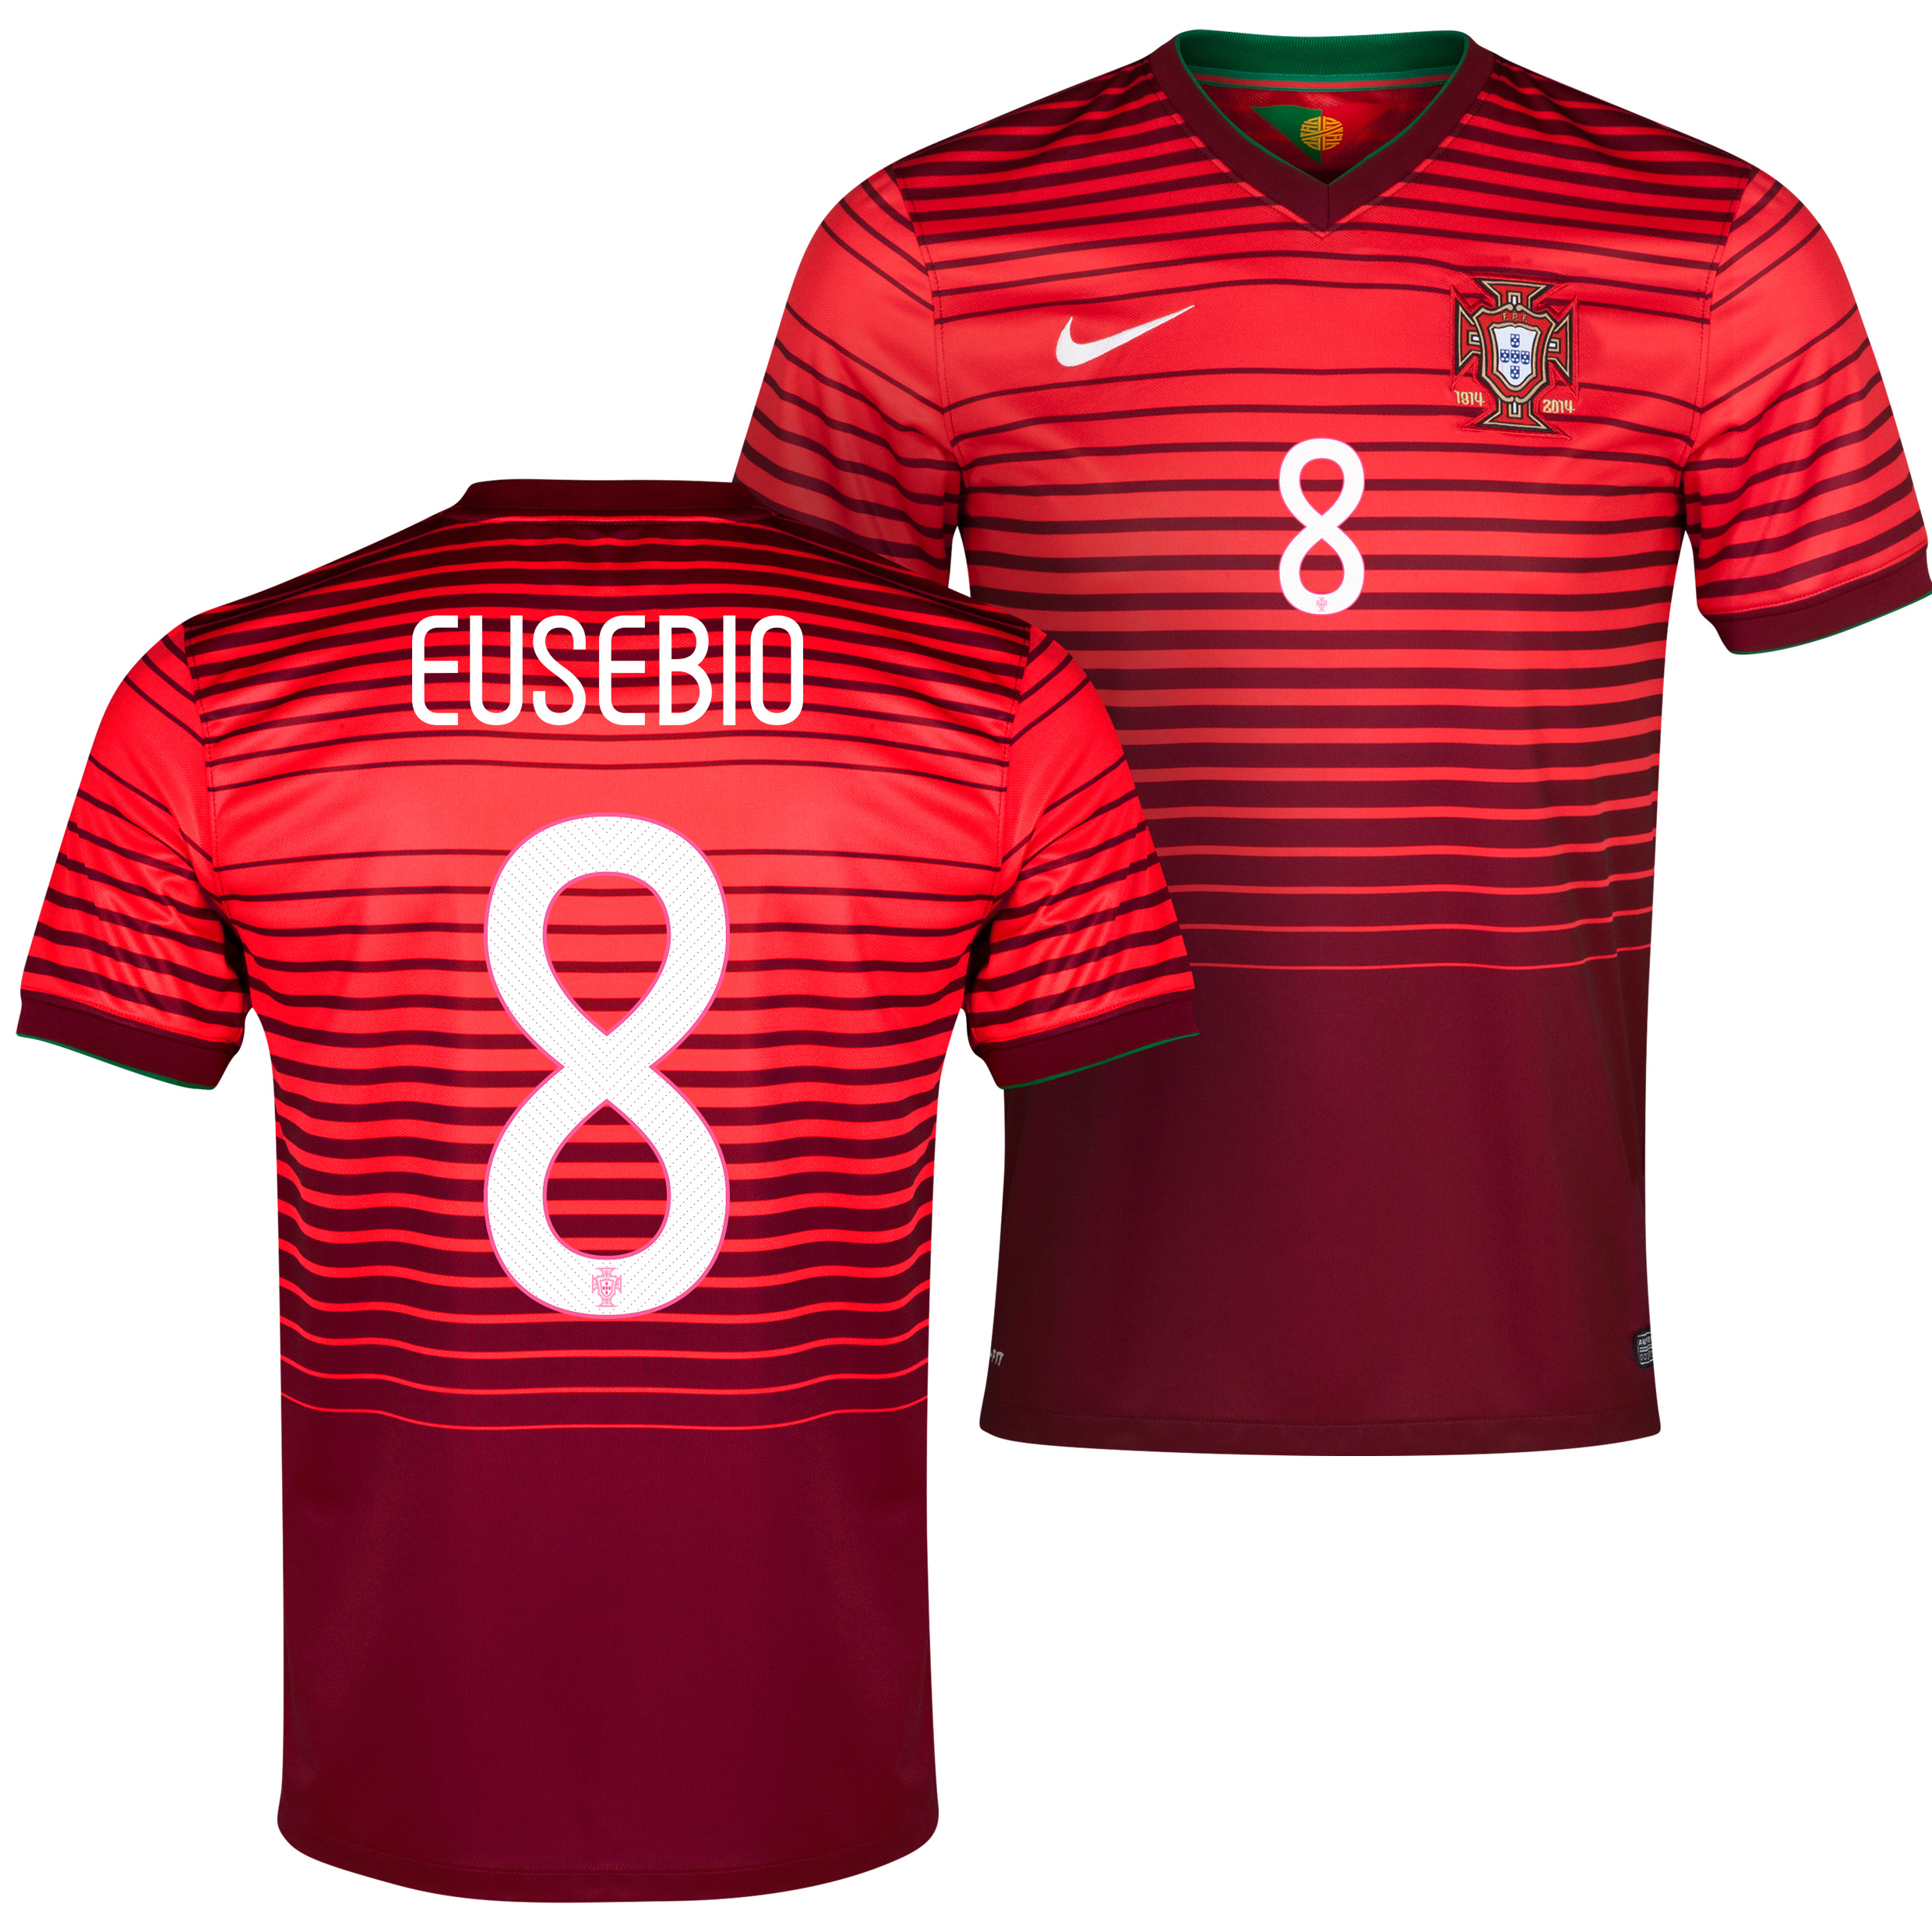 Portugal Home Shirt 2013/15 Red with Eusebio 8 printing